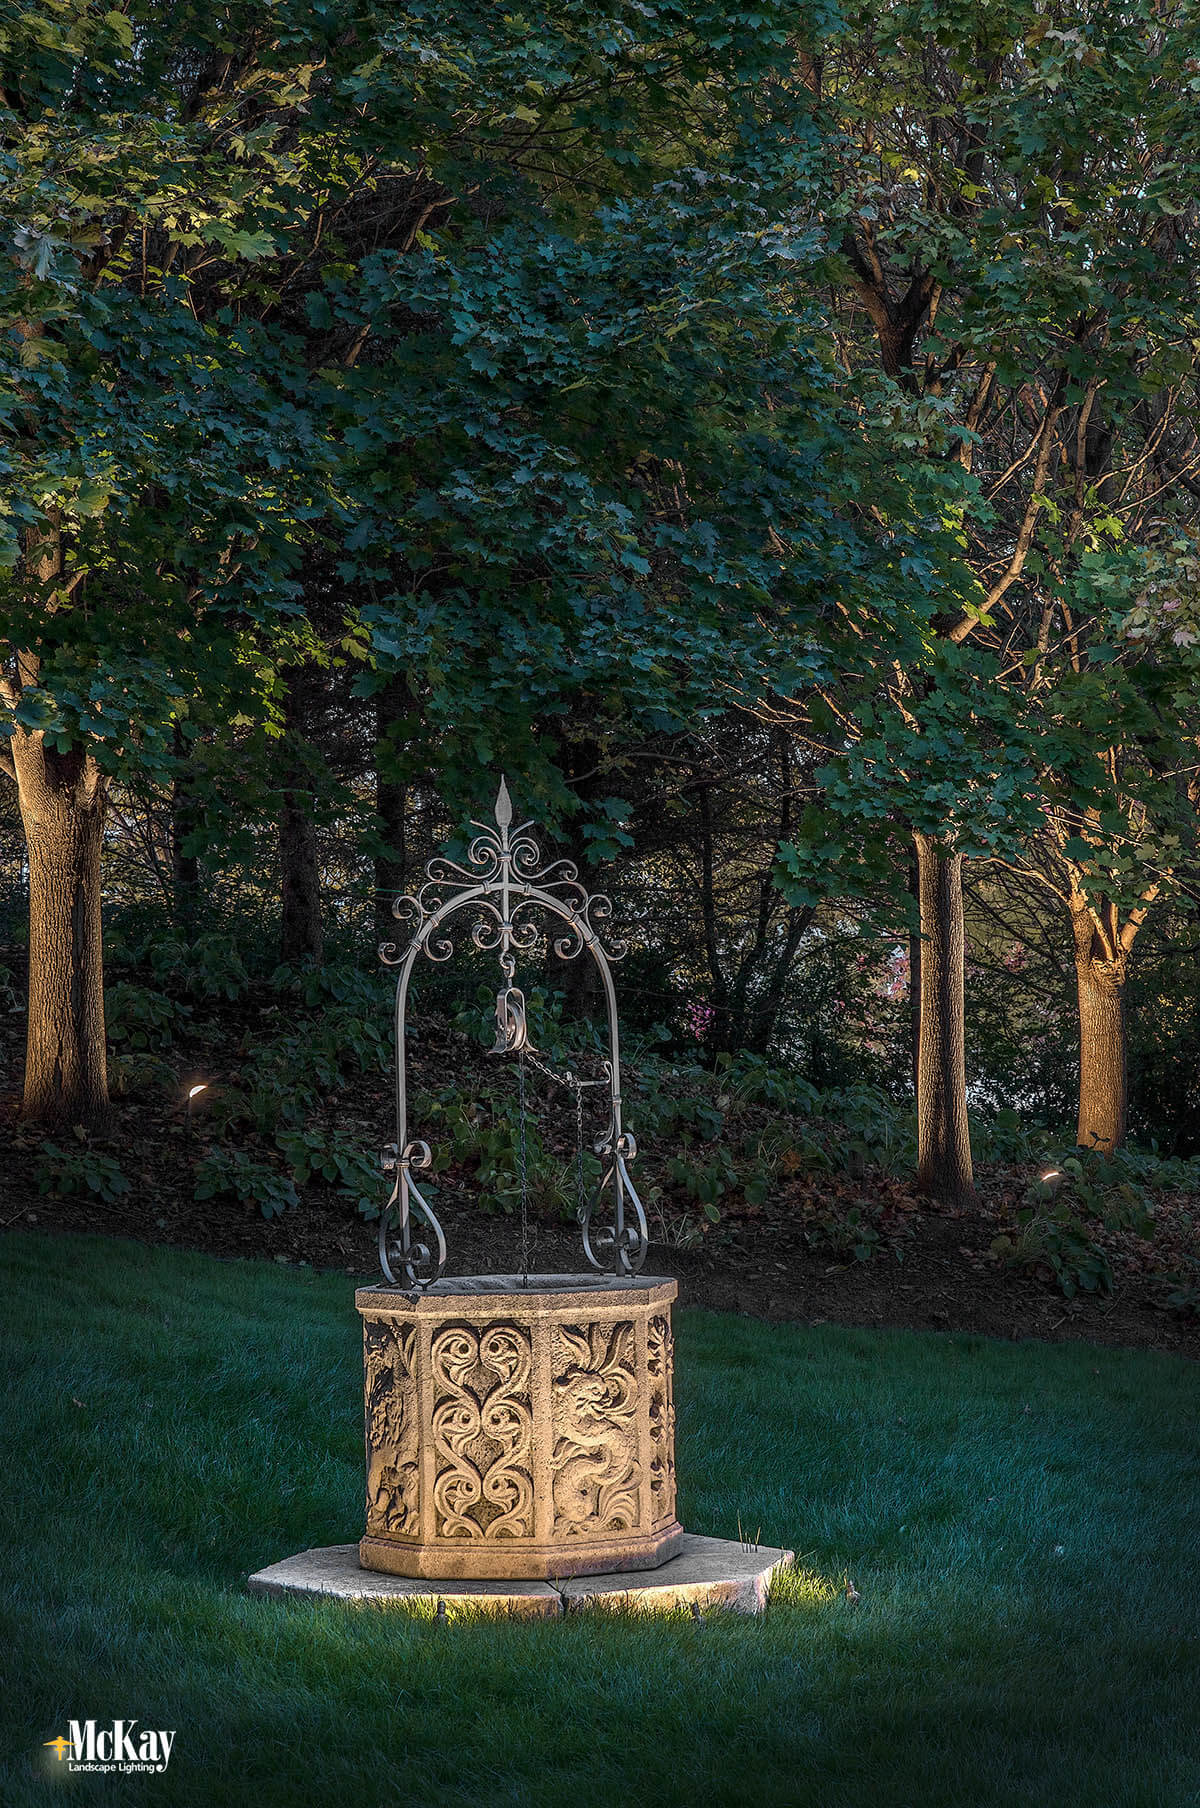 The new landscape lighting design completely transformed the property, adding curb appeal and interest. Click to see more photos of the lighting design... | McKay Landscape Lighting - Omaha, Nebraska